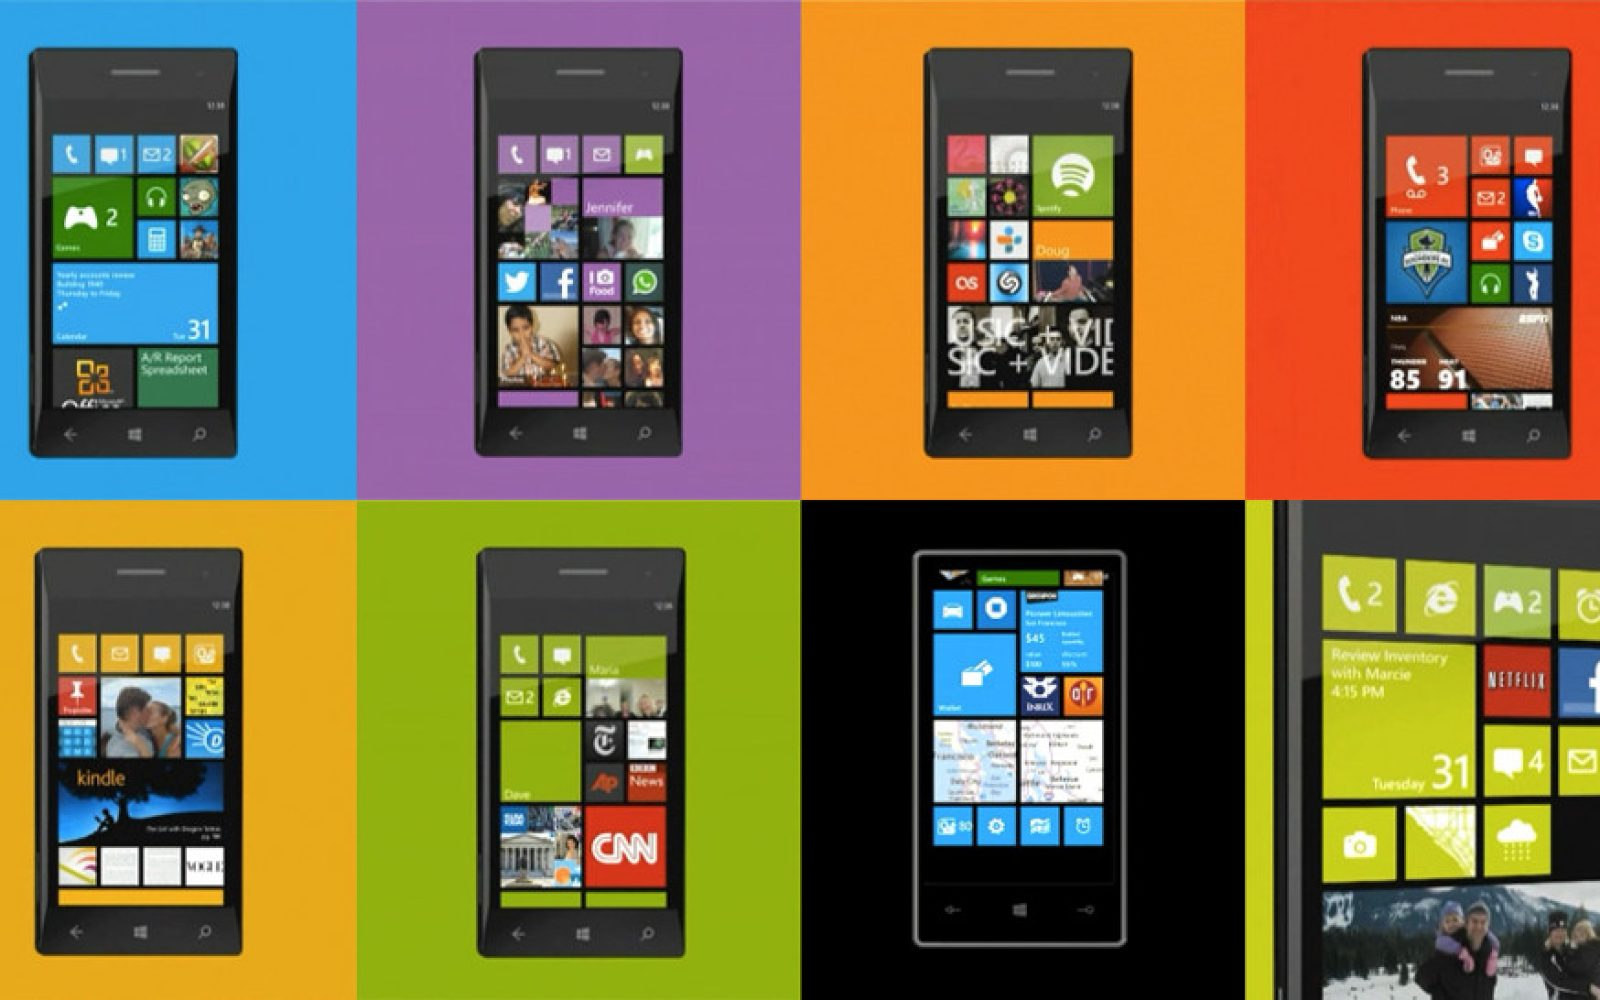 There's a dual-boot Android/Windows Phone smartphone on the